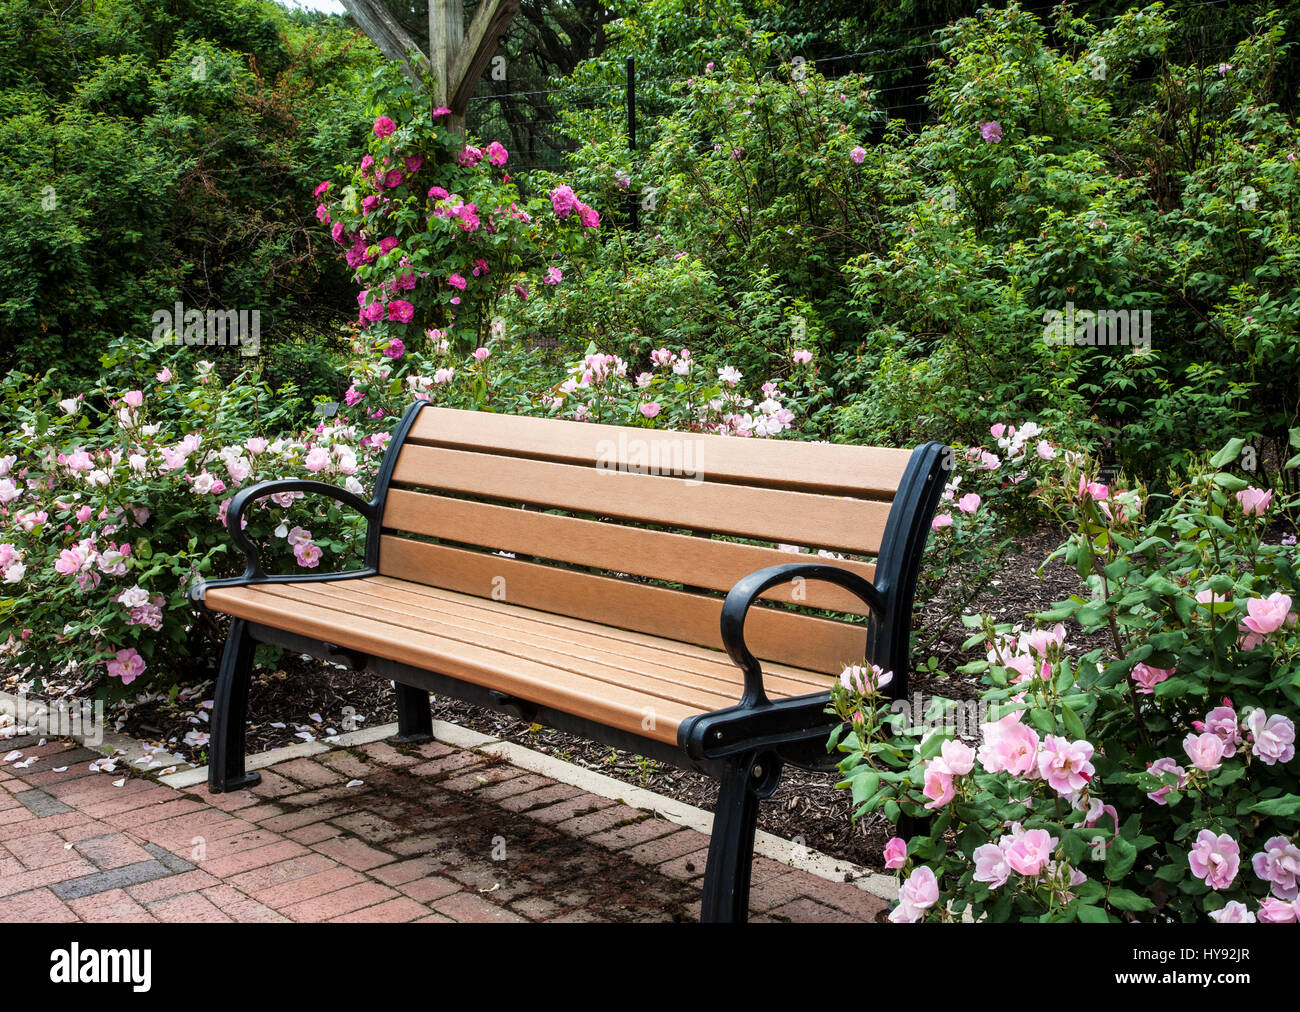 Park bench in a ROse garden, New Jersey, USA Stock Photo: 137267951